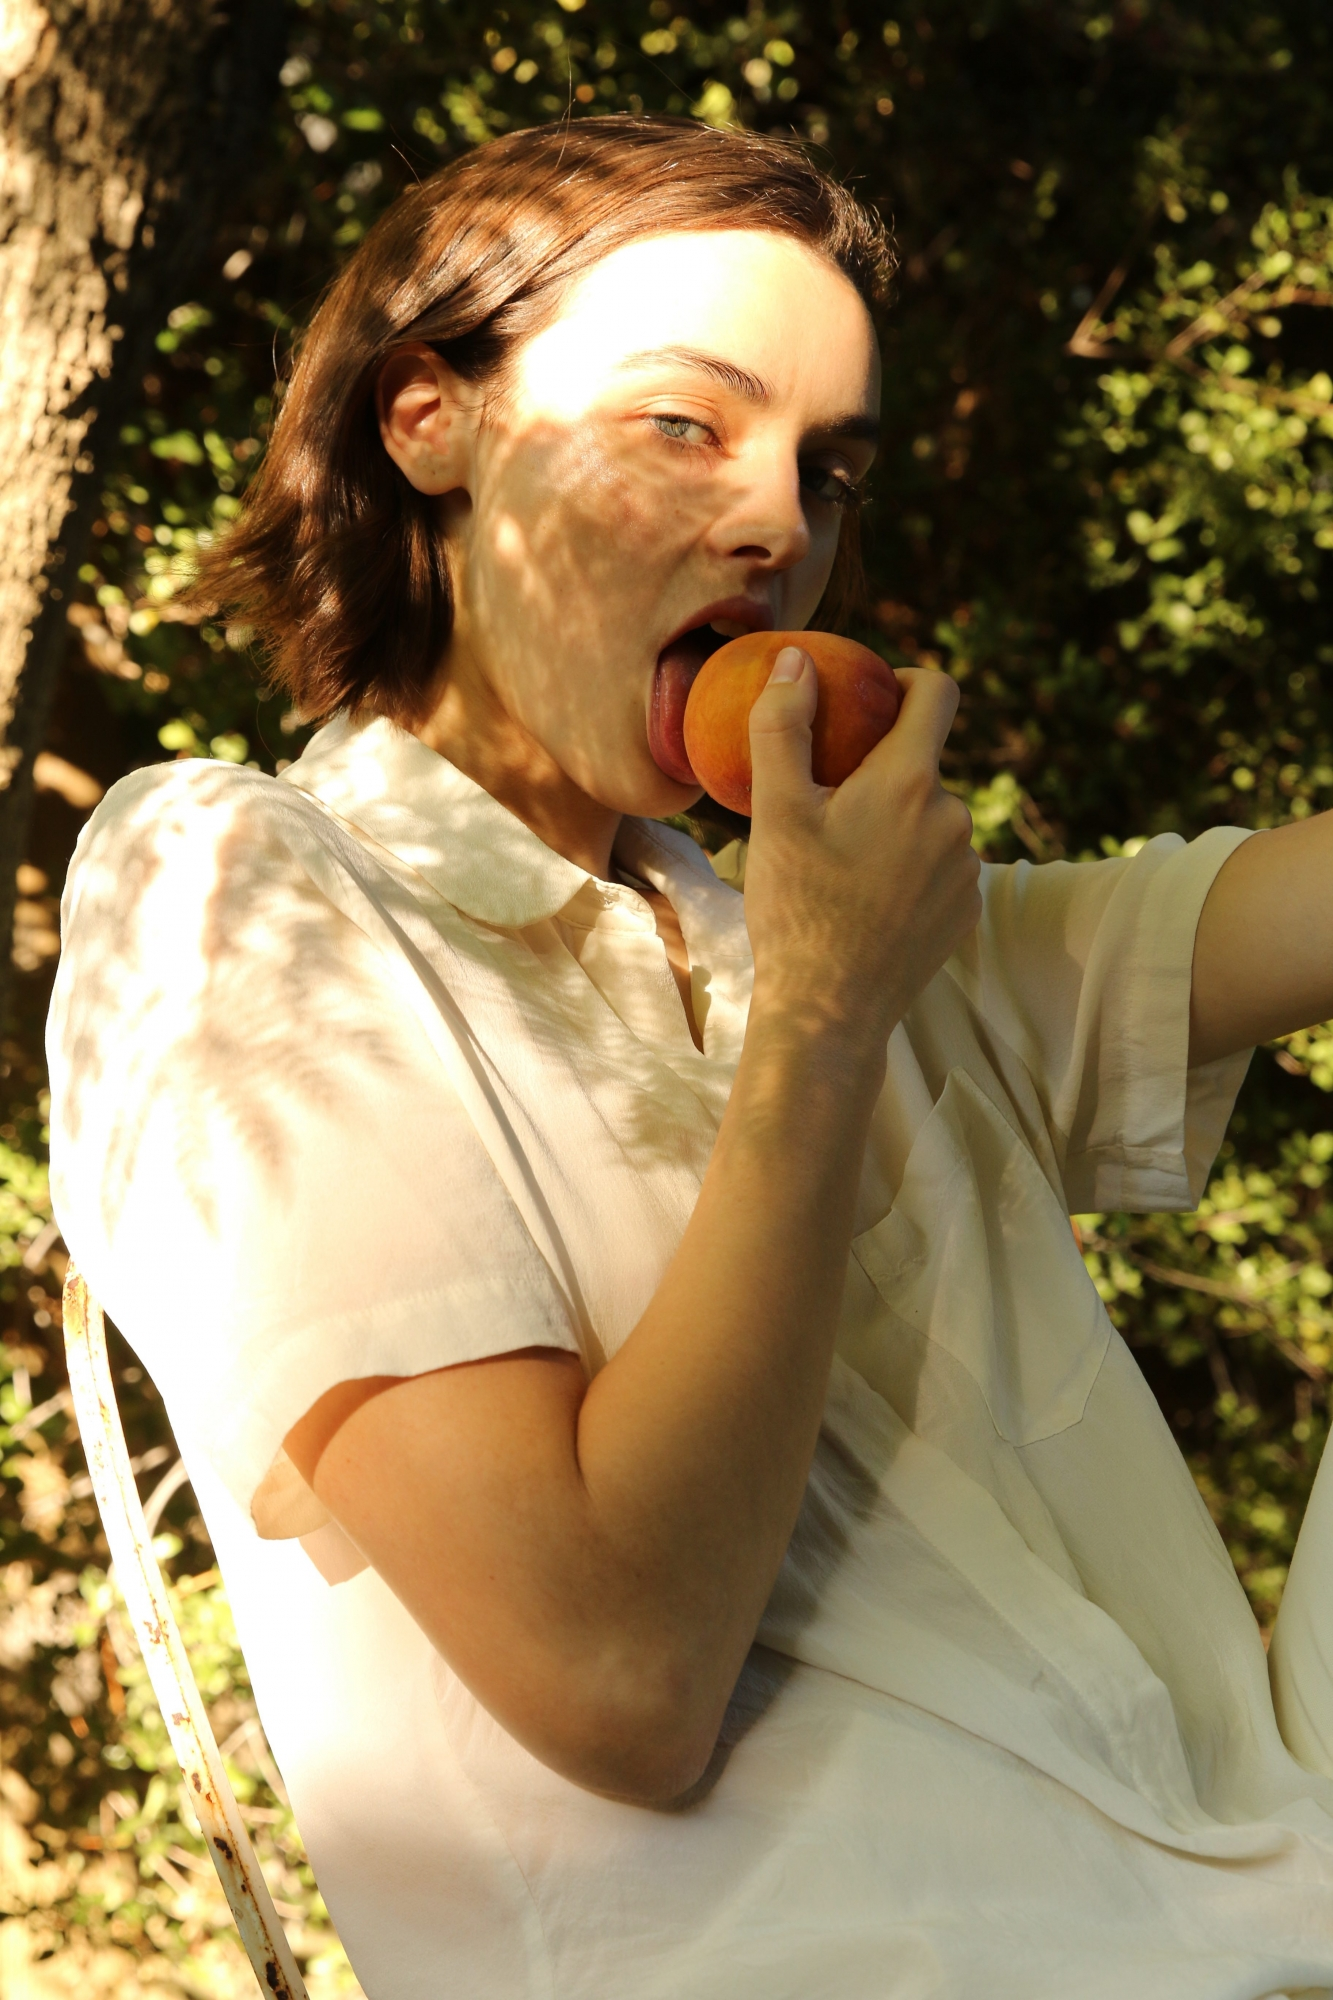 Woman licking a peach while gazing into the camera.